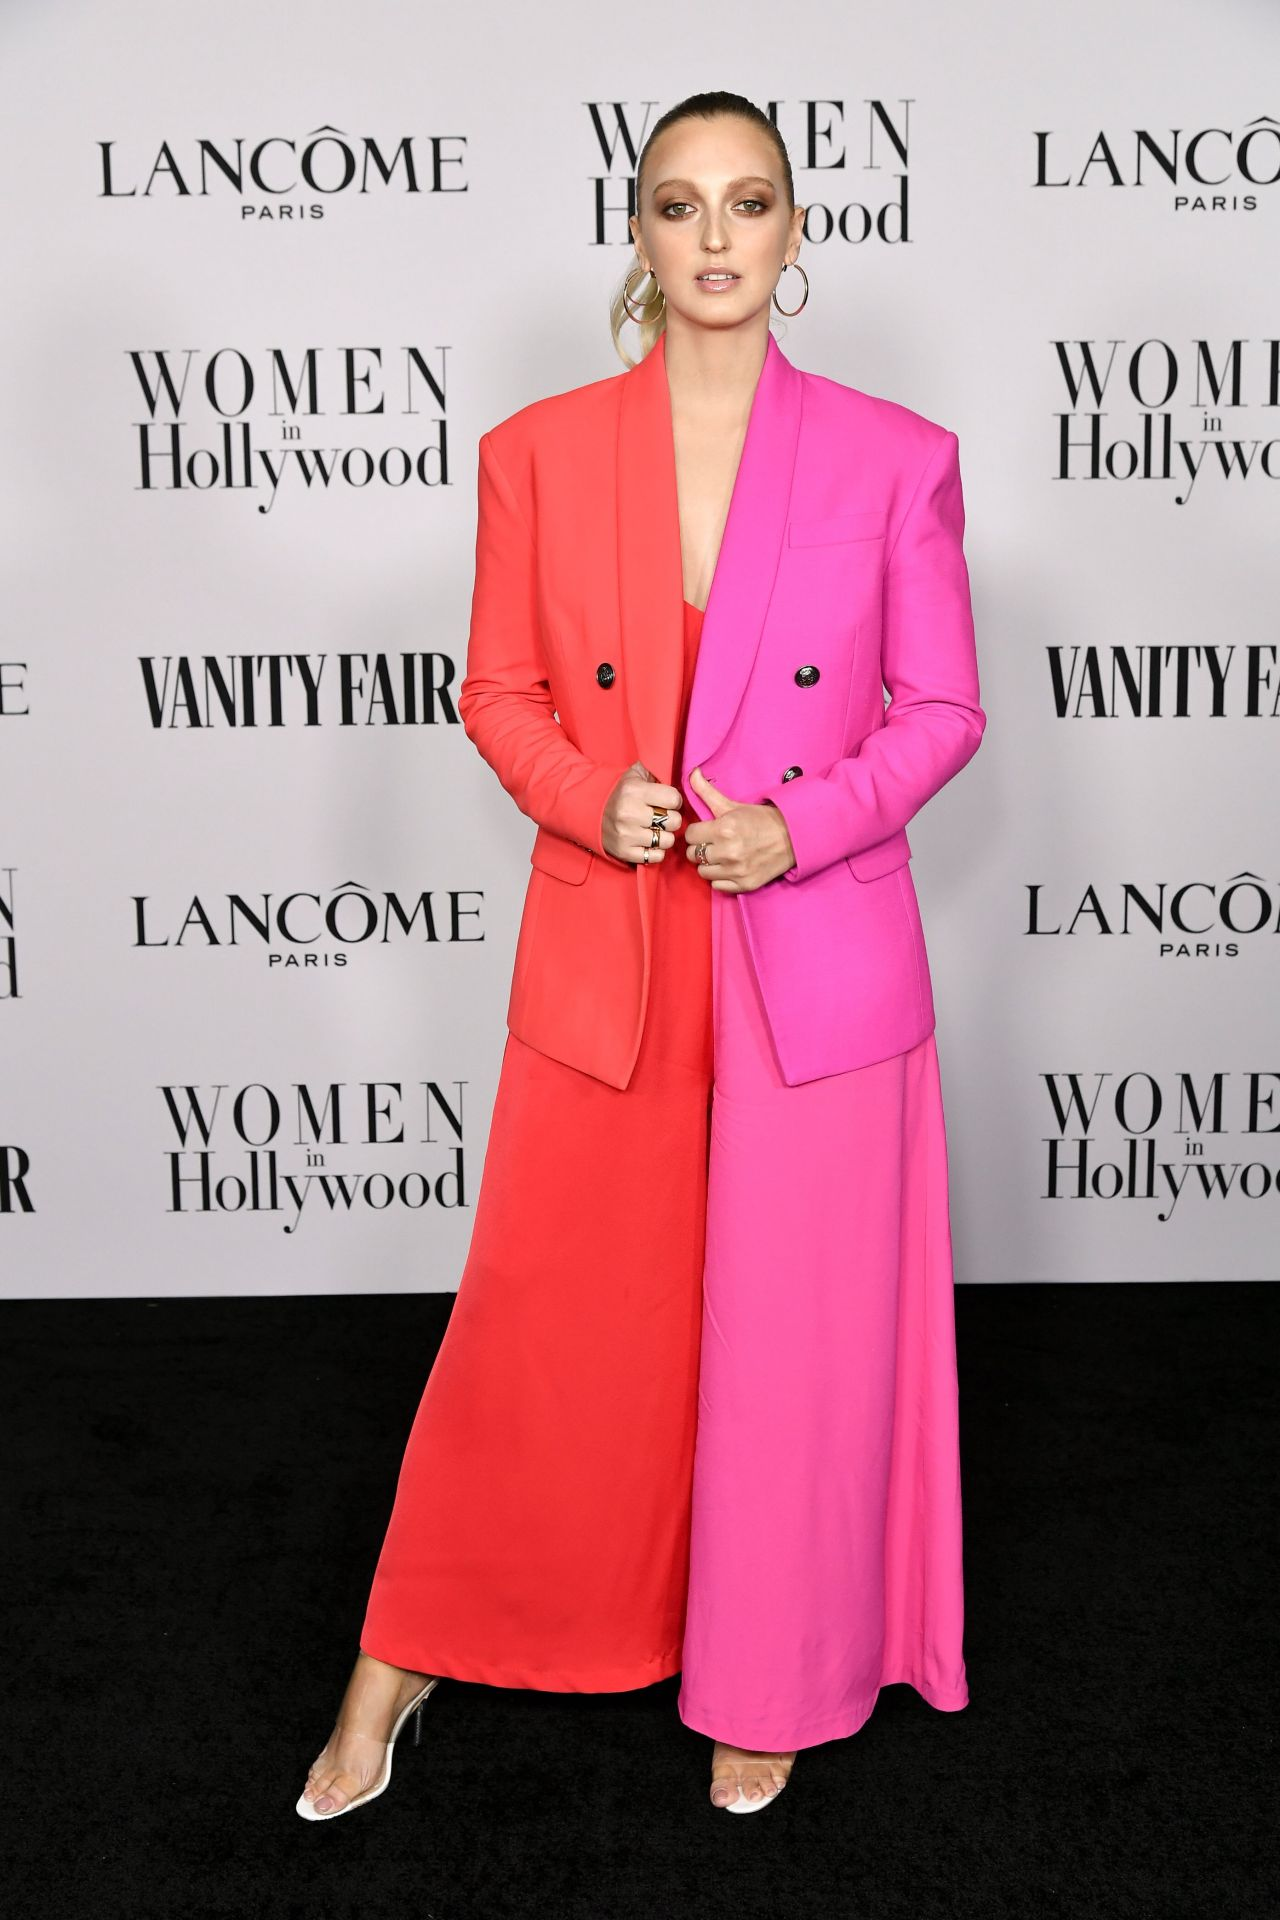 georgia-hirst-in-color-block-suit-vanity-fair-and-lancome-women-in-hollywood-celebration